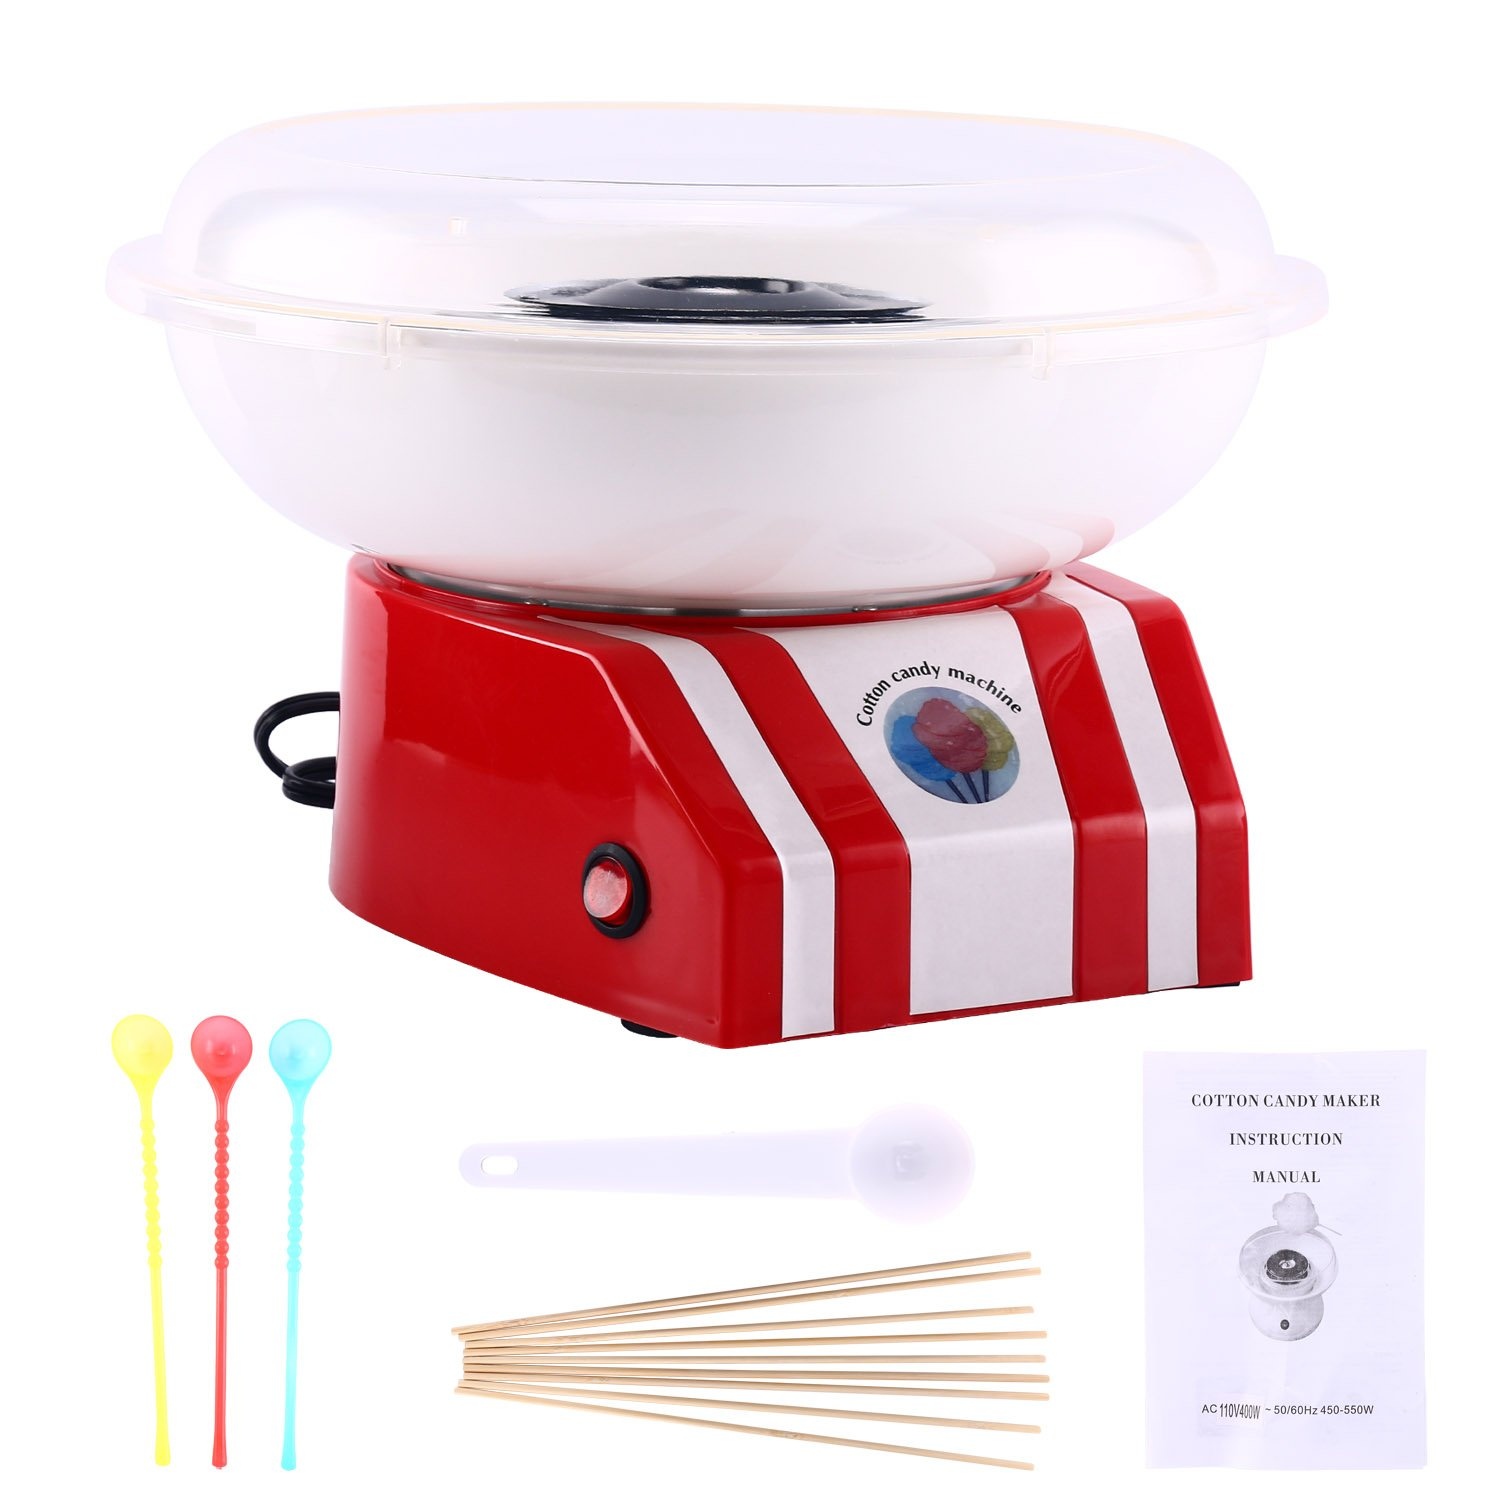 Homend Cotton Candy Machine, Bright, Colorful Style- Makes Hard Candy, Sugar Free Candy, Sugar Floss, Homemade Sweets for Birthday Parties